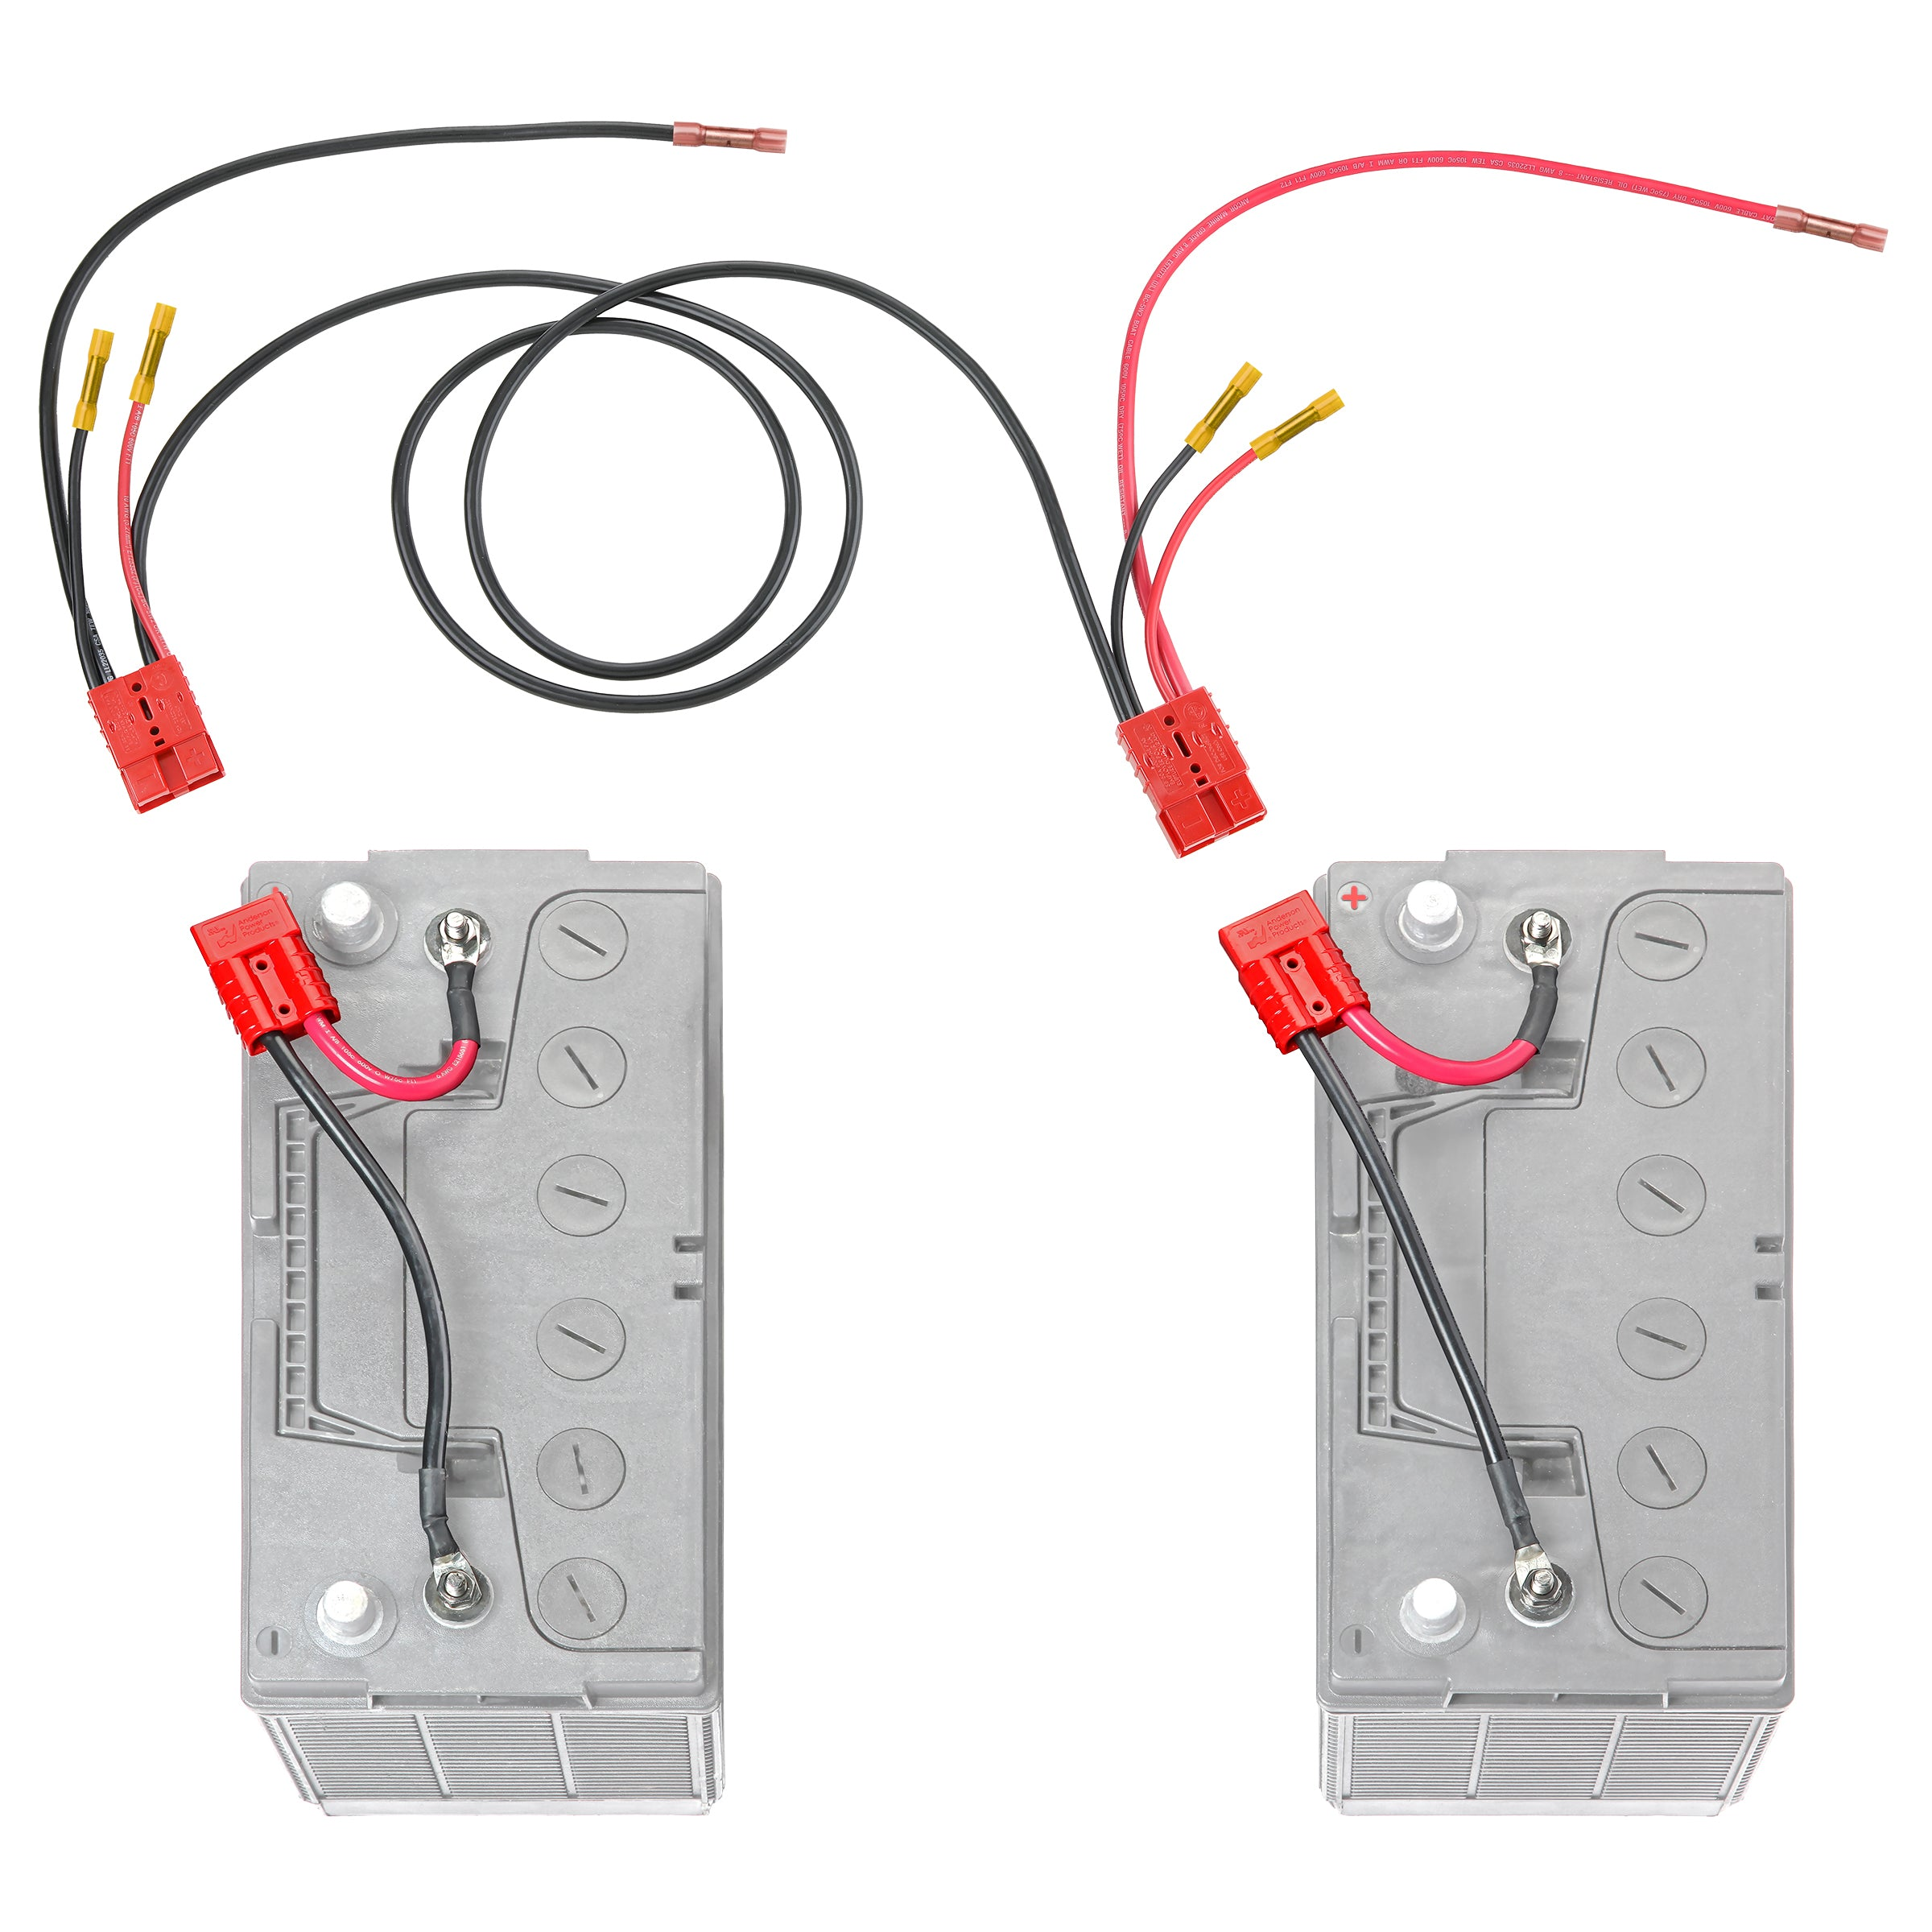 24 Volt Trolling Motor Connection 5 U0026 39  Extension For Separated Battery Compartments  Rce24vb5chk